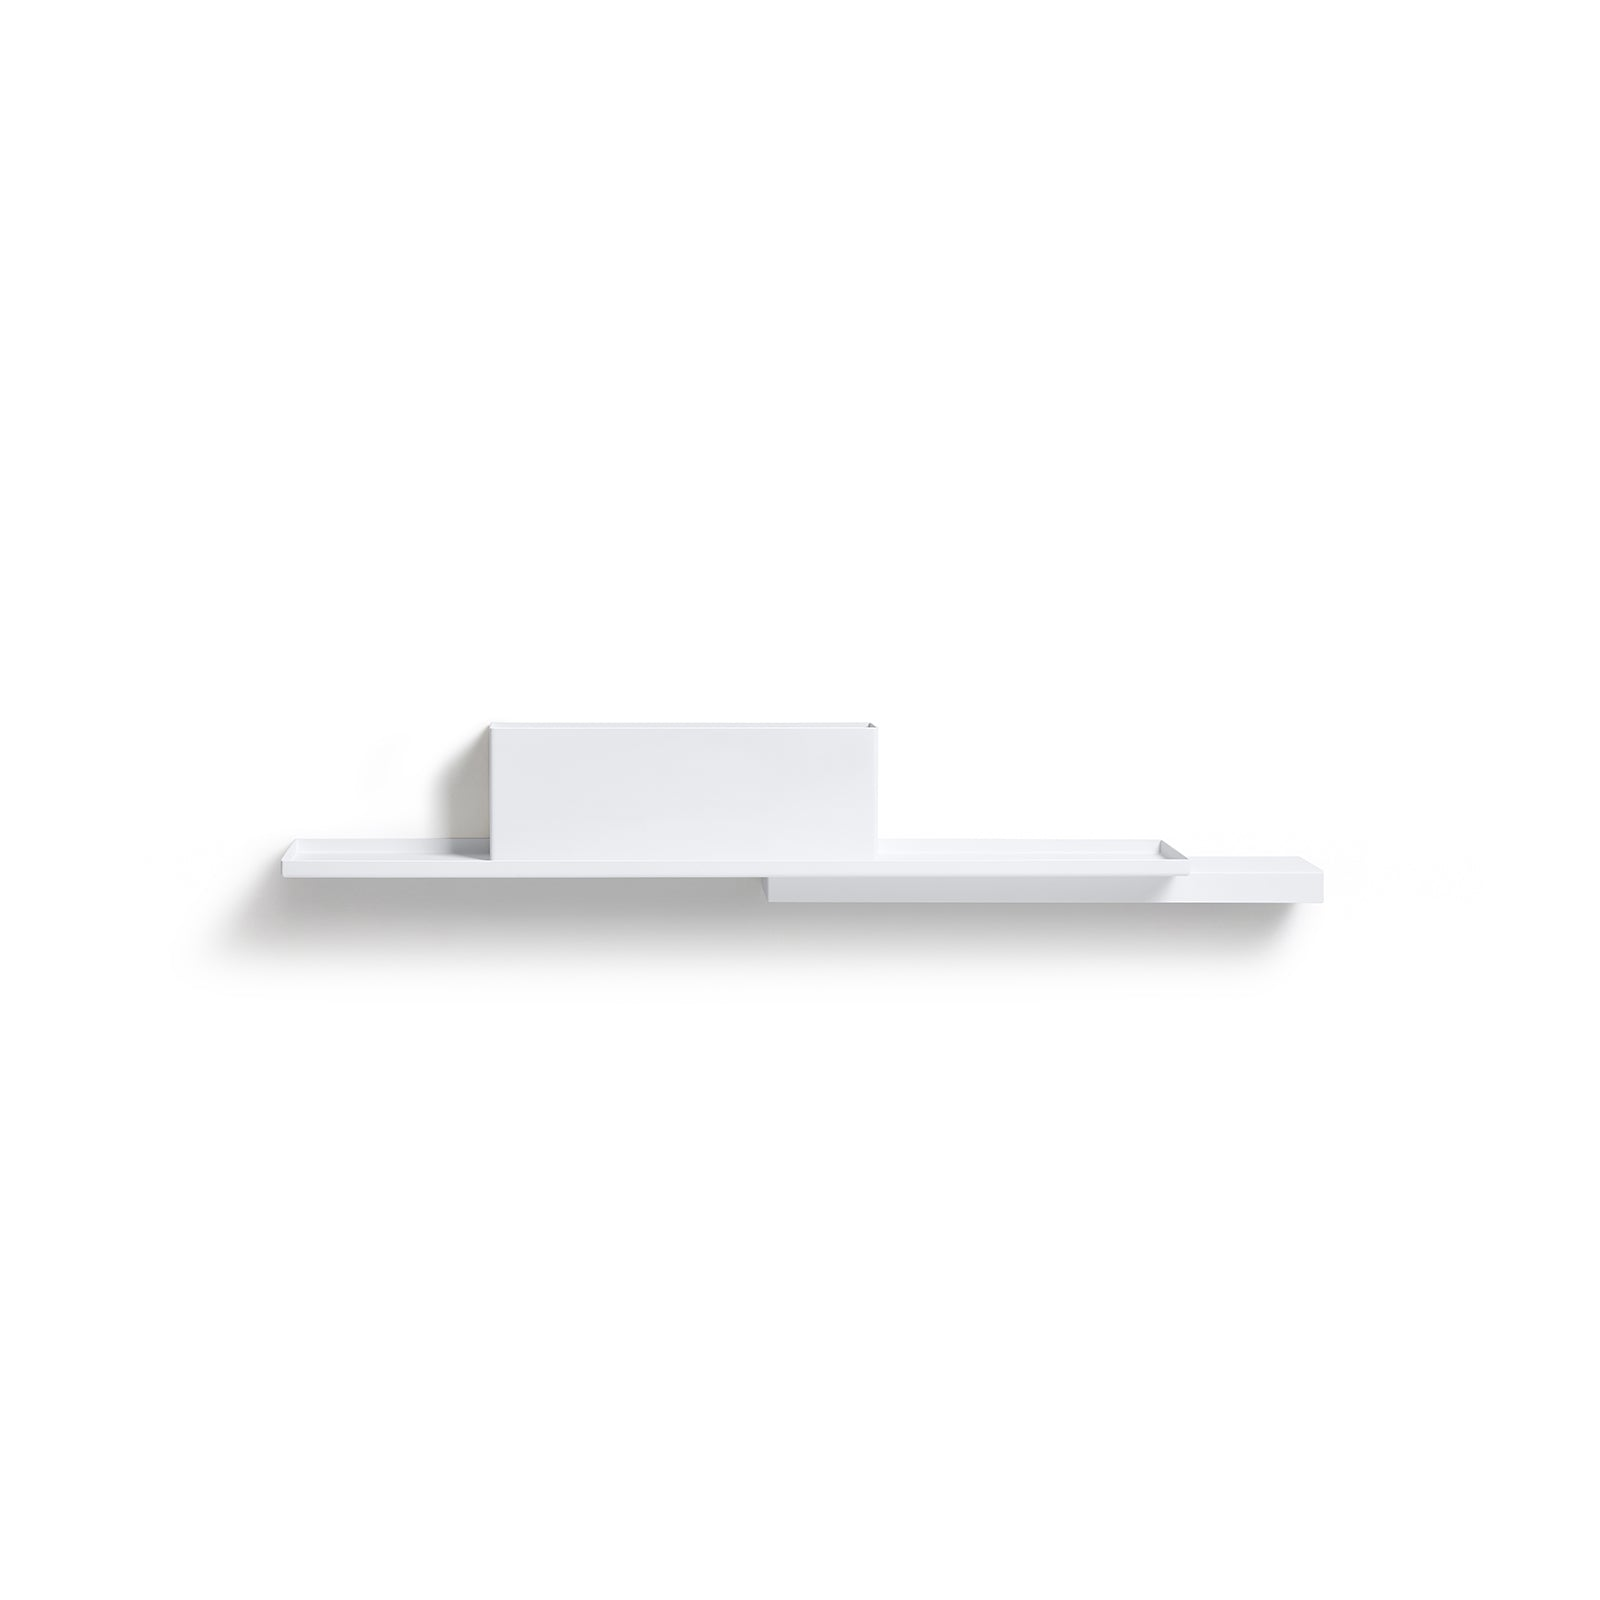 White Duplex Shelf by Puik against a white backdrop.